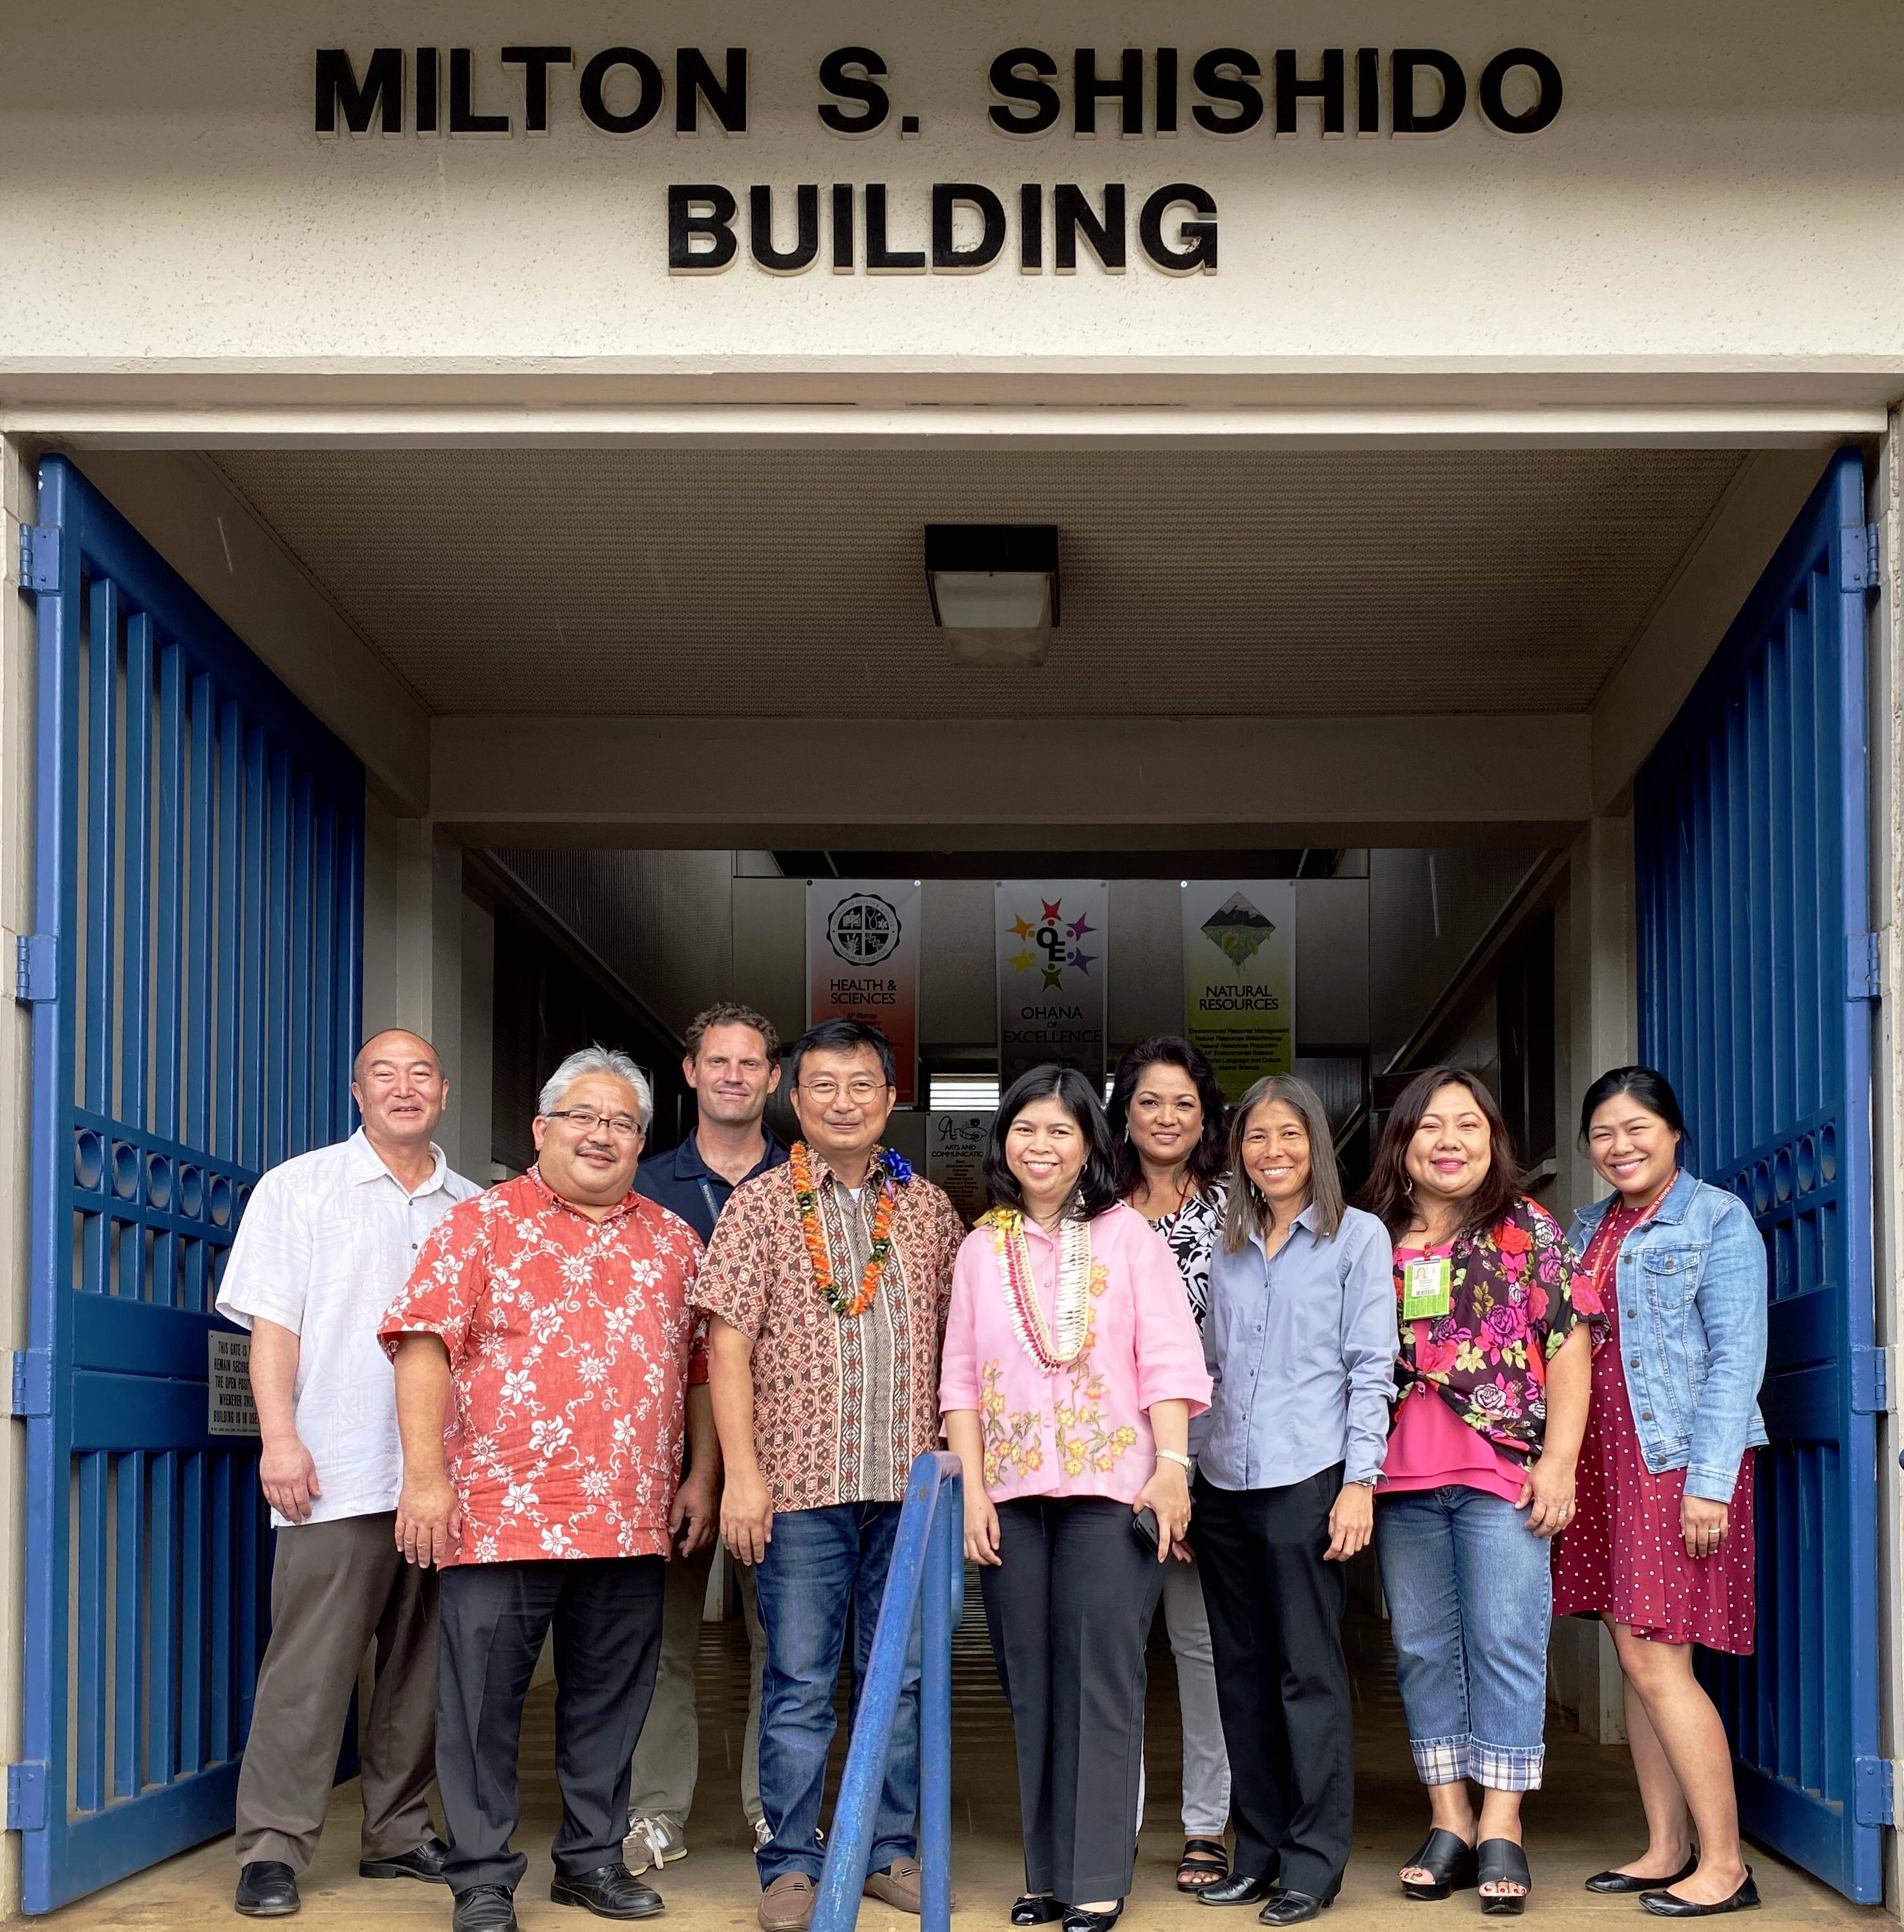 Mr. Joel B. Lopez and Ms. Grace Ann Bulos photographed with Mr. Keith Hayashi, Ms. Meryl Matsumura and group from Waipahu High School